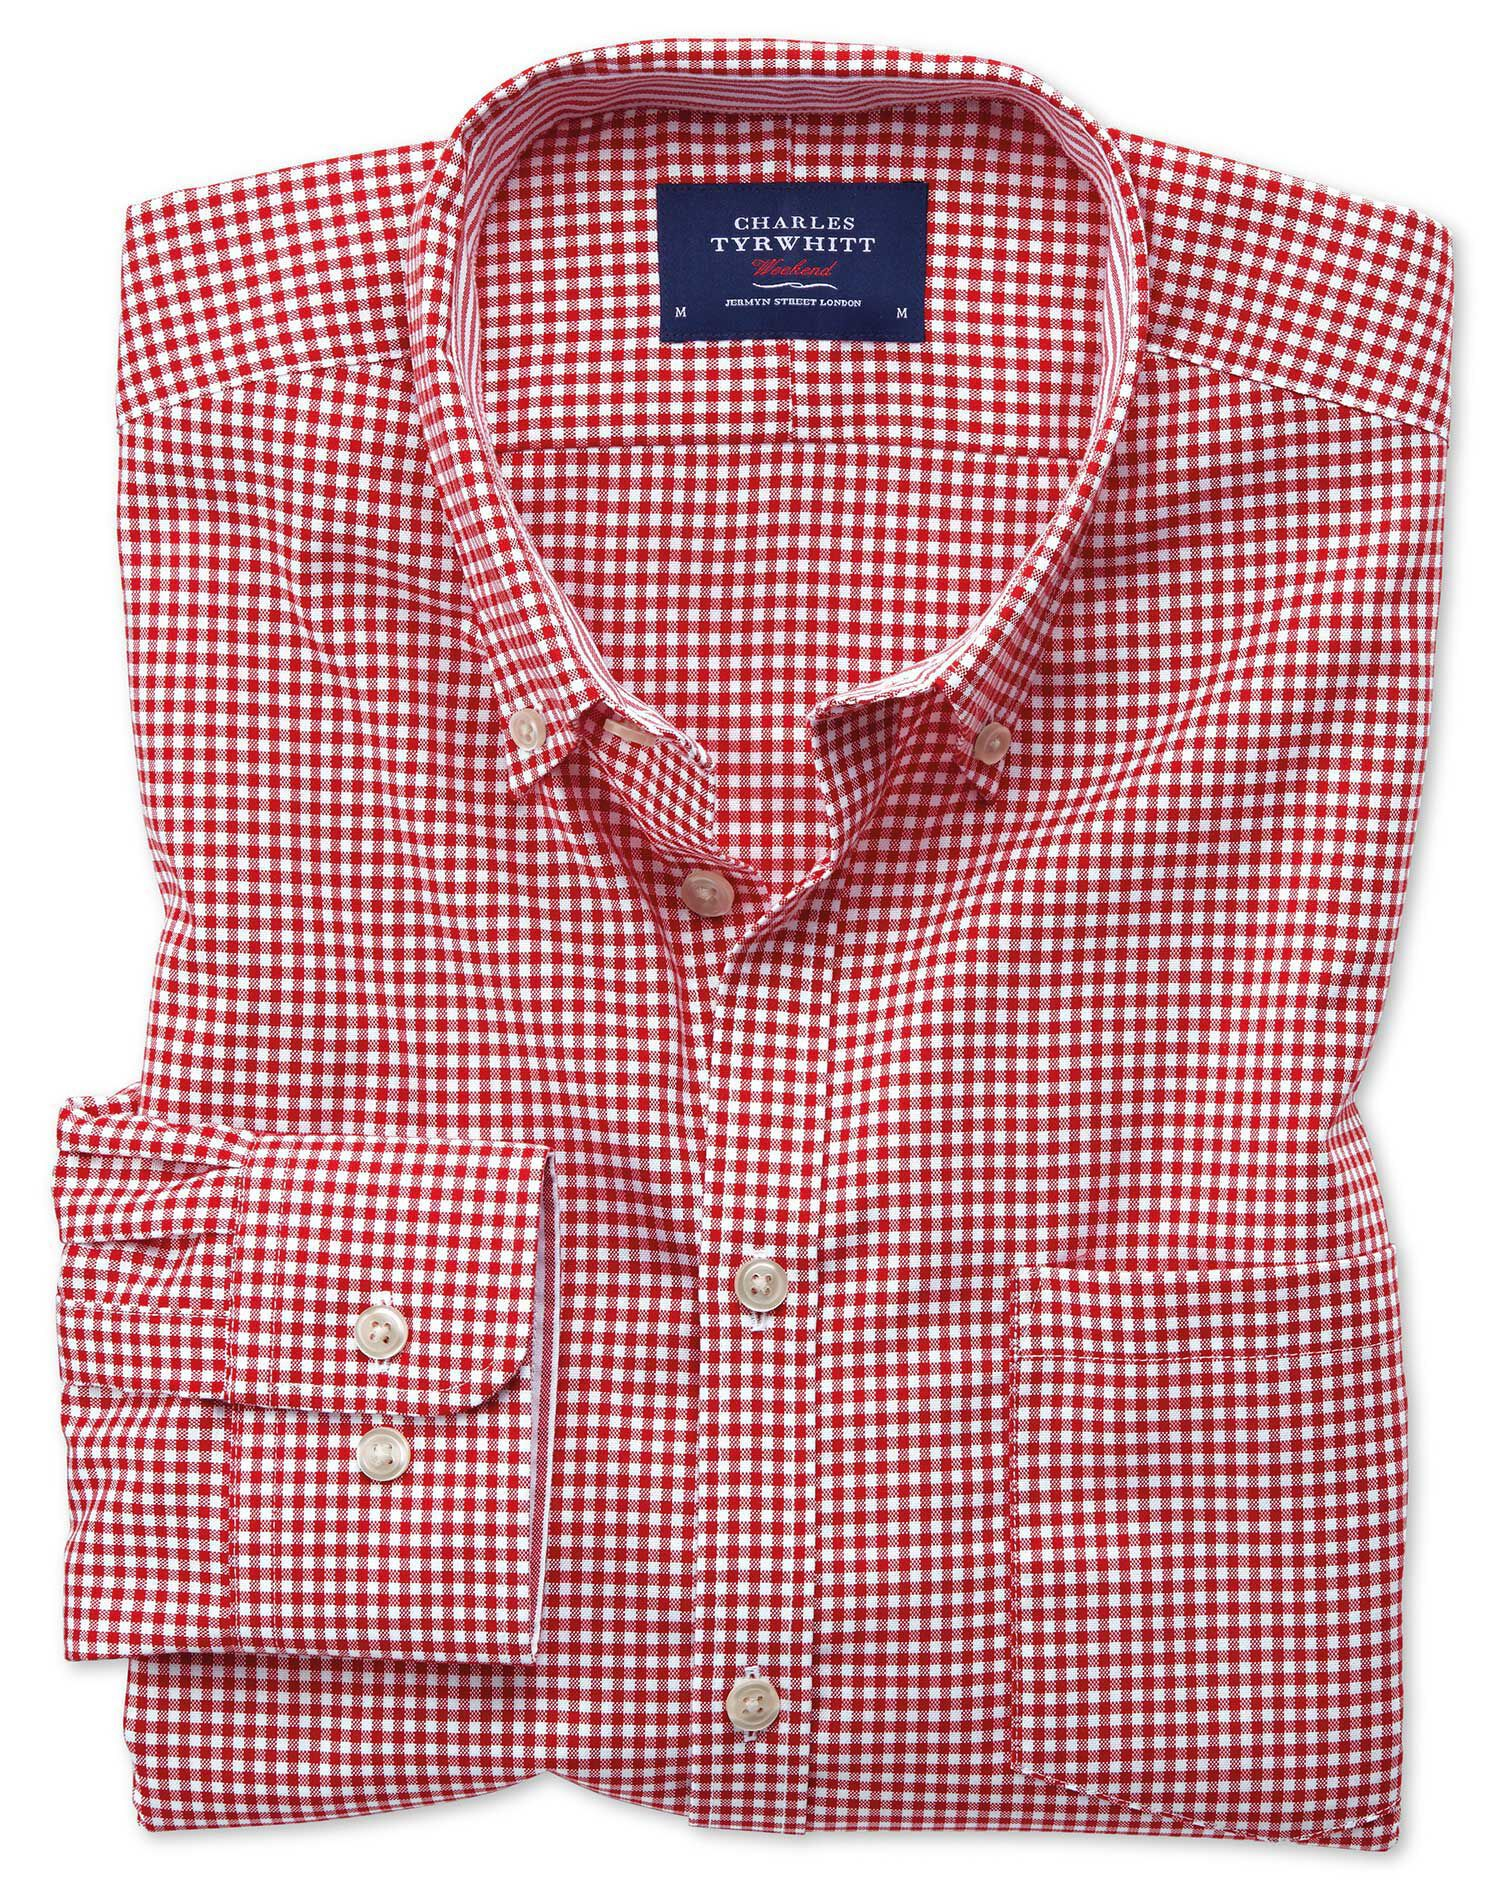 Classic Fit Non-Iron Oxford Gingham Red Cotton Shirt Single Cuff Size XXXL by Charles Tyrwhitt